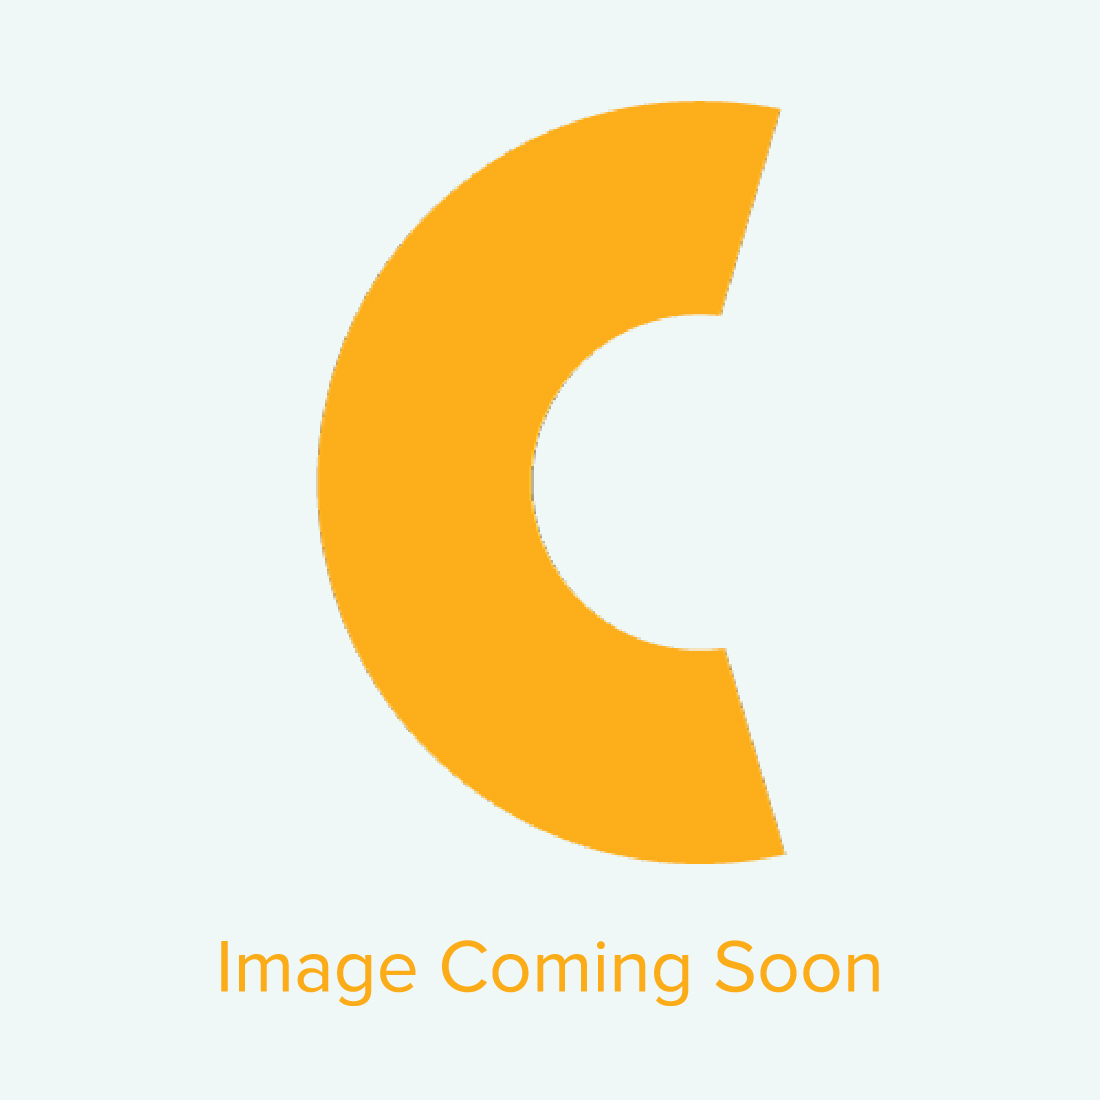 """Chromaluxe MDF Chamfer Sublimation Photo Wall Panels with Black Edge and Keyhole - 16""""x20"""" (5/case)"""